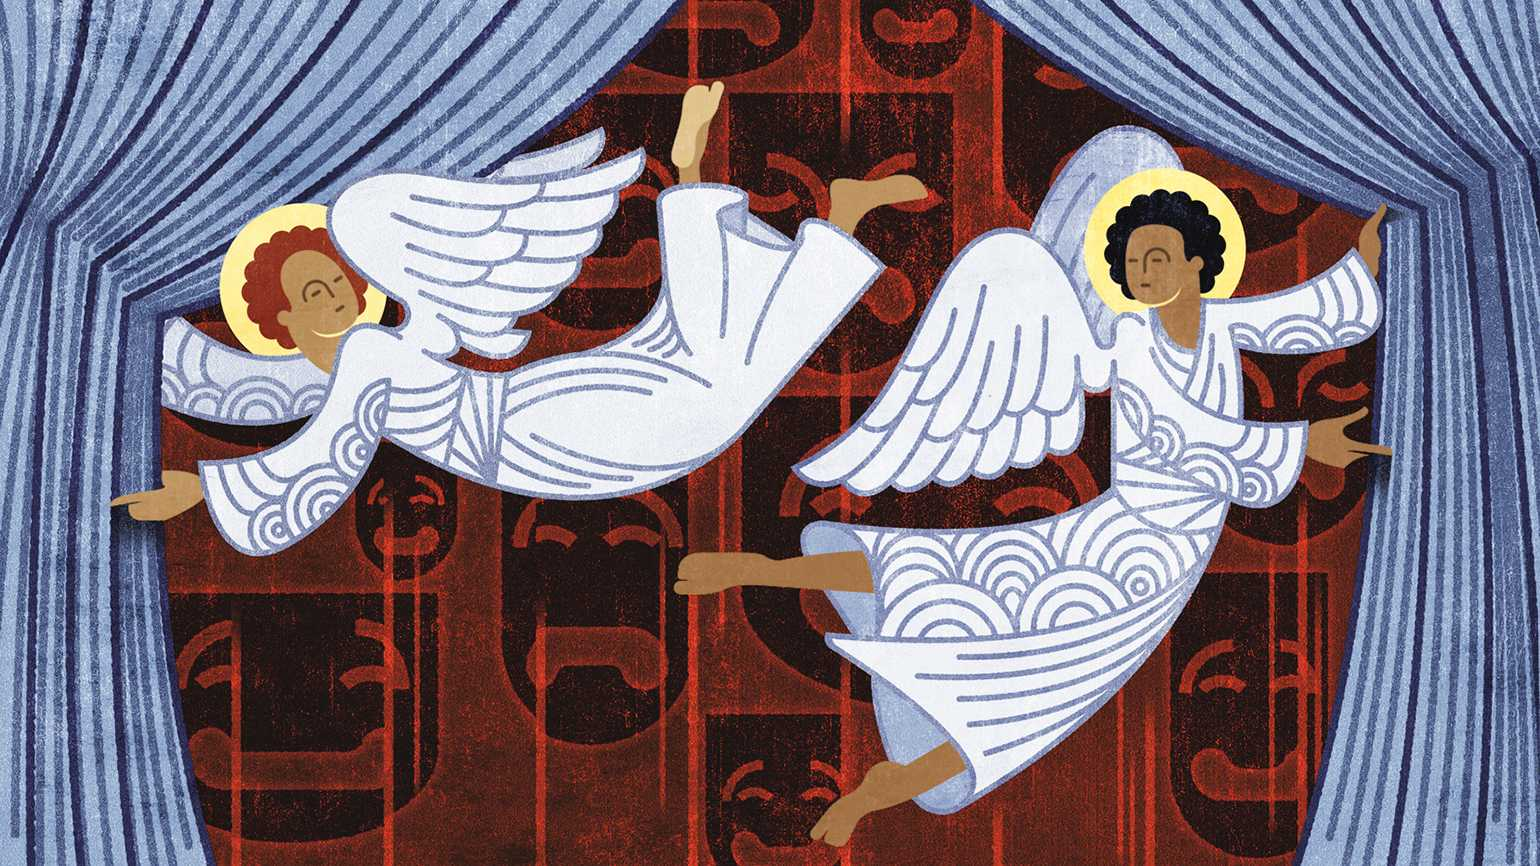 An artist's rendering of a pair of angels pulling stage curtains open